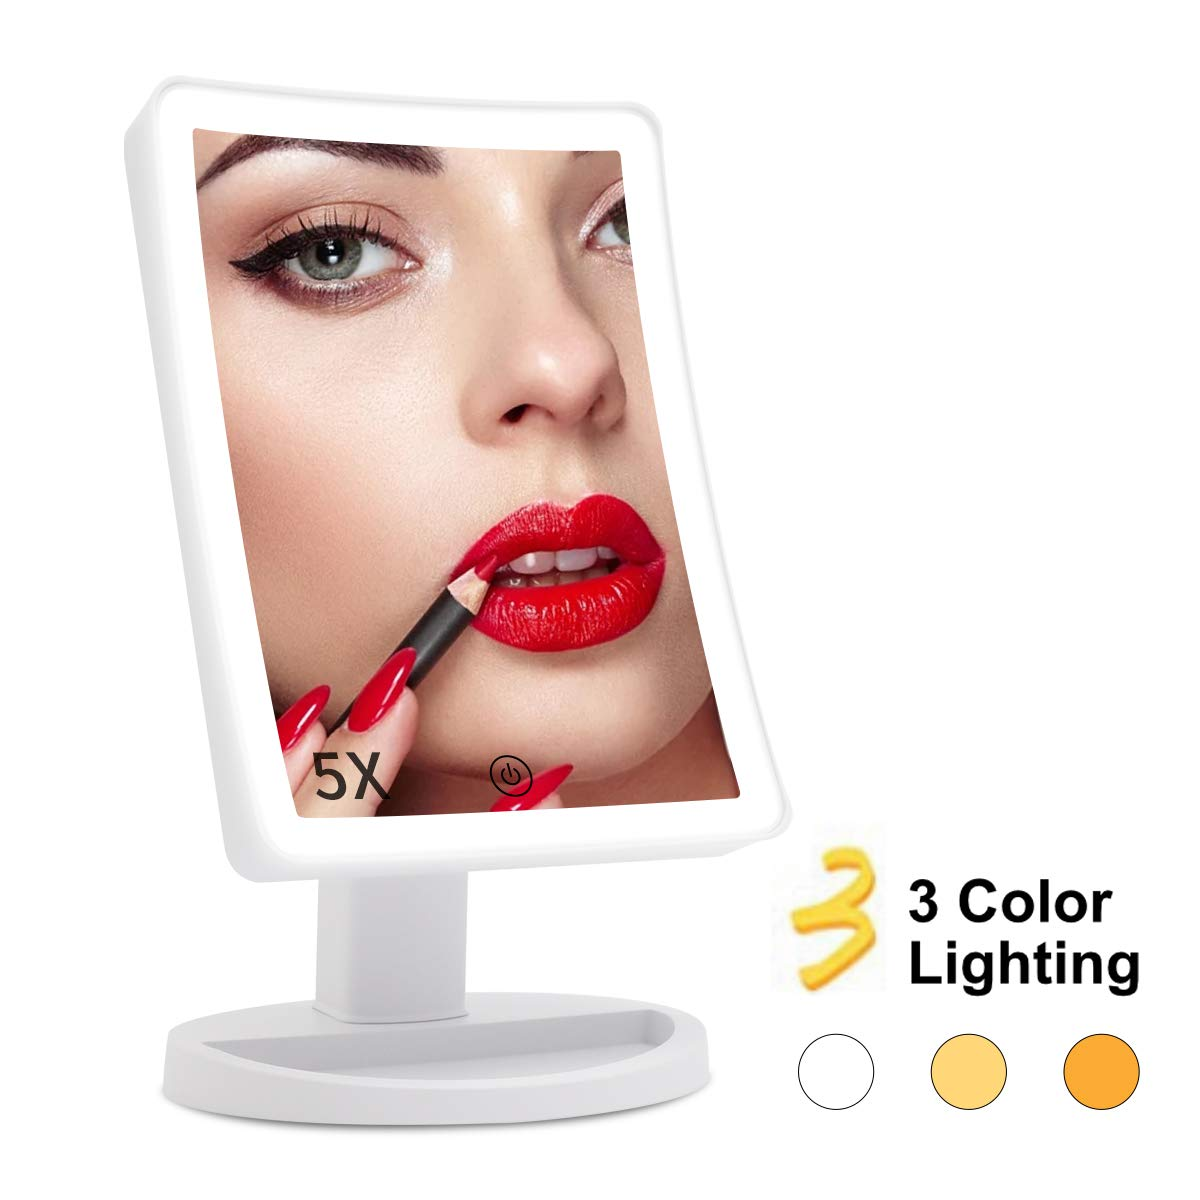 COSMIRROR 5X Magnifying Makeup Vanity Mirror, Lighted Makeup Mirror with 72 LED Lights and 3 Color Lighting, Dual Power Supply, 180 Degree Rotation Cosmetic Magnification Tabletop Light up Mirrors